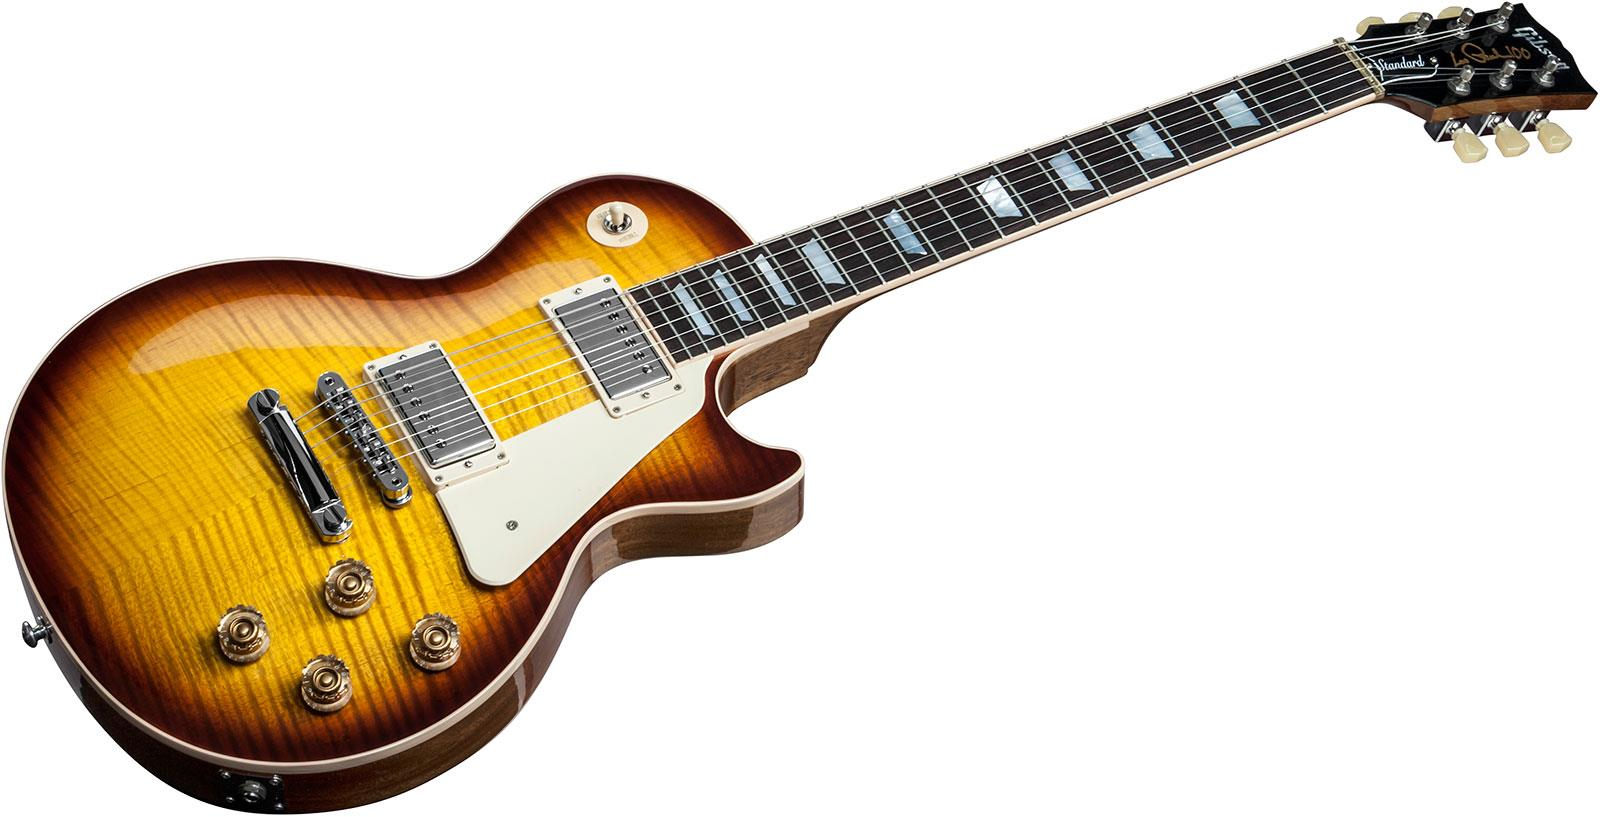 Gibson Les Paul Gibson Les Paul Standard 2015 Honeyburst Perimeter Candy